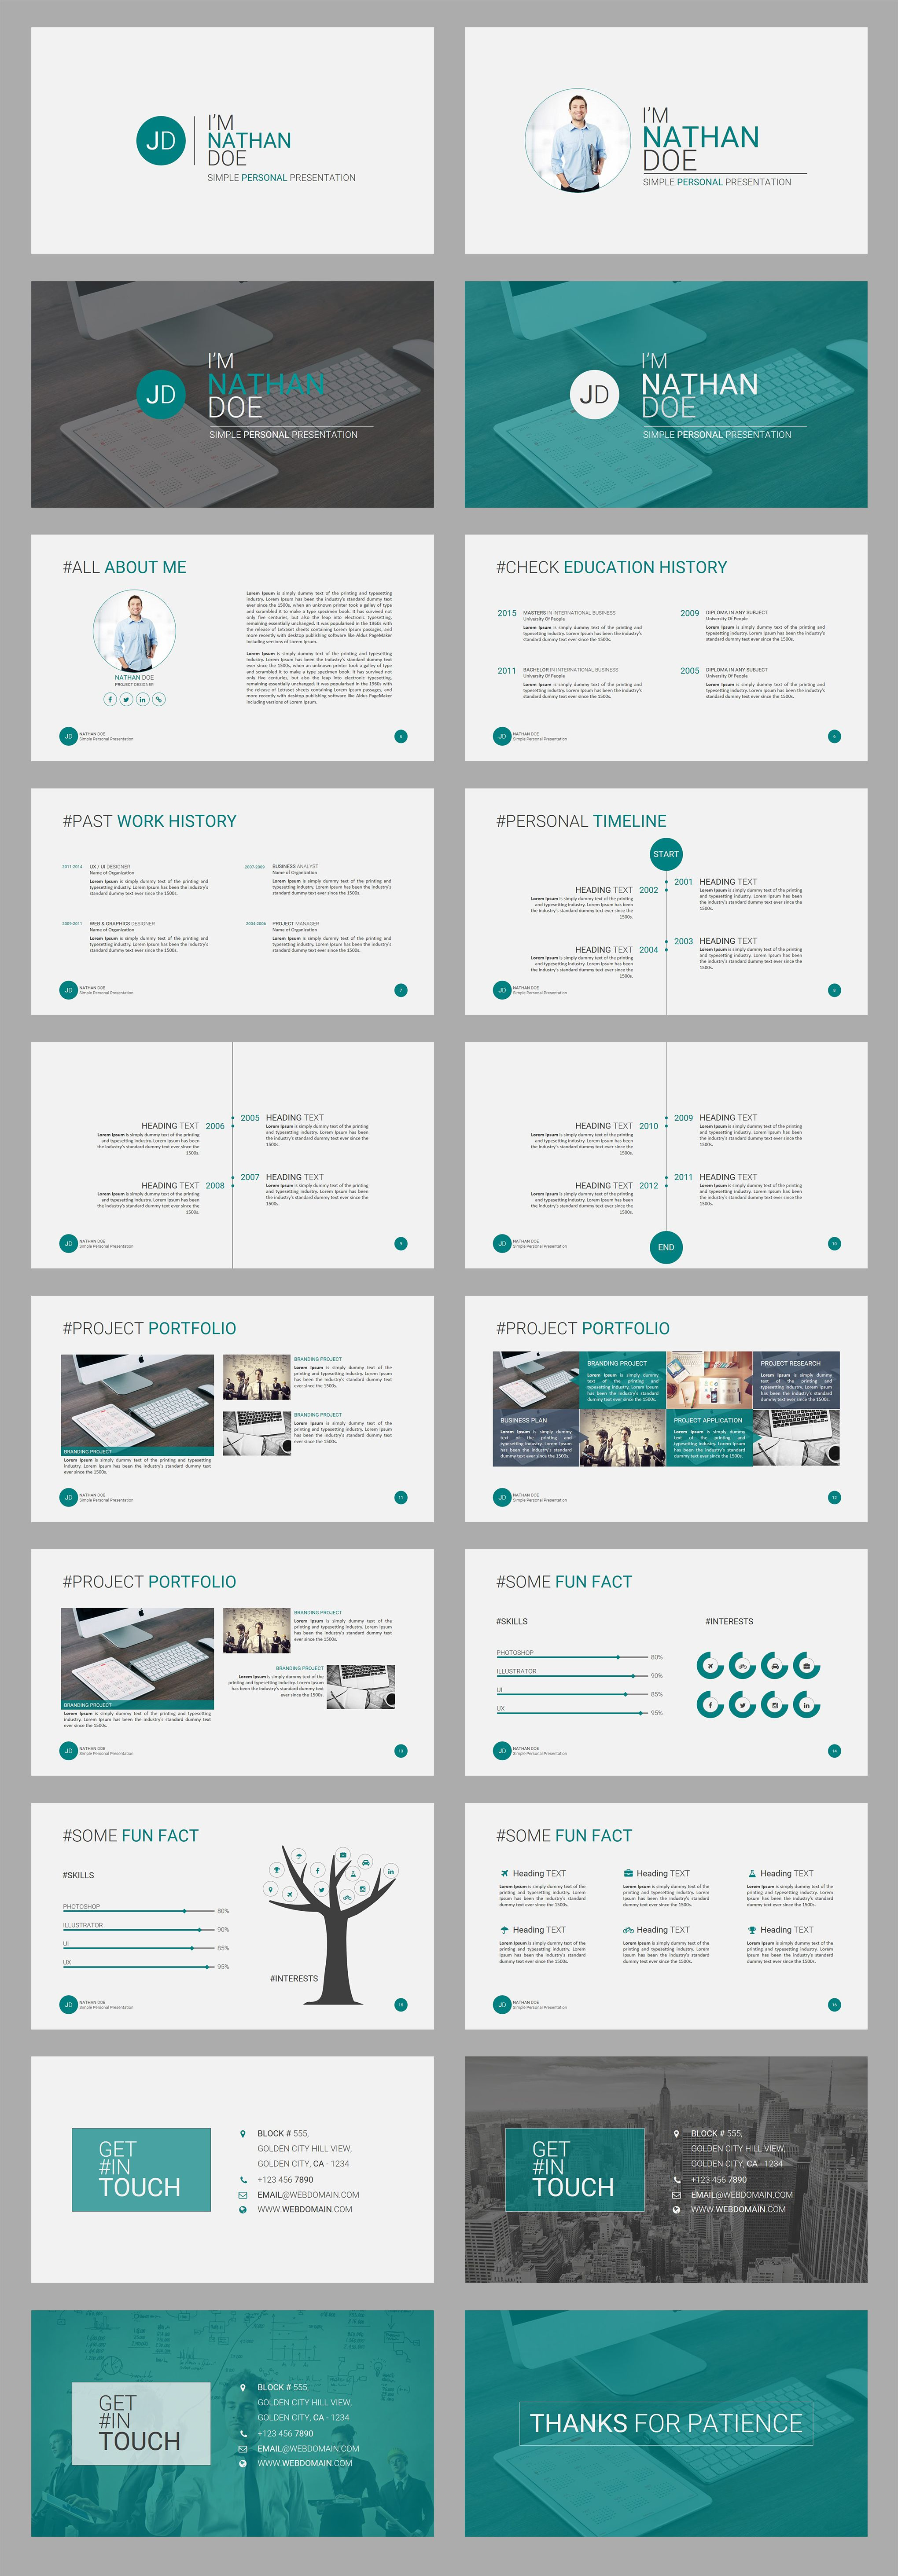 "Powerpoint Resume Jd  Personal Cvresume Powerpoint Presentation Template"" Is A"